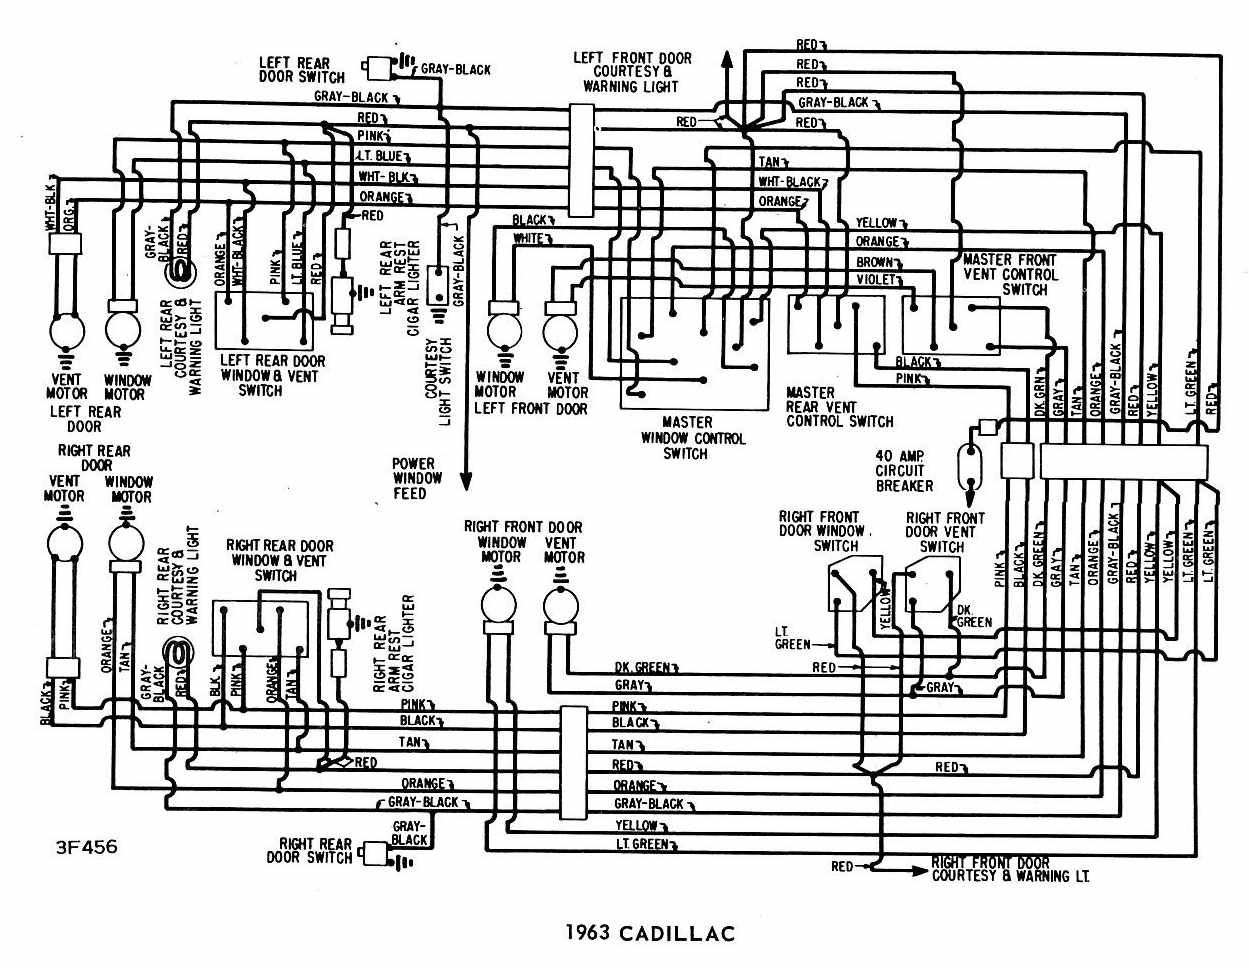 Automotive Electrical Wiring Diagram Pdf Library About Schematics Cadillac 1963 Windows For Jaguar Xj6 Free